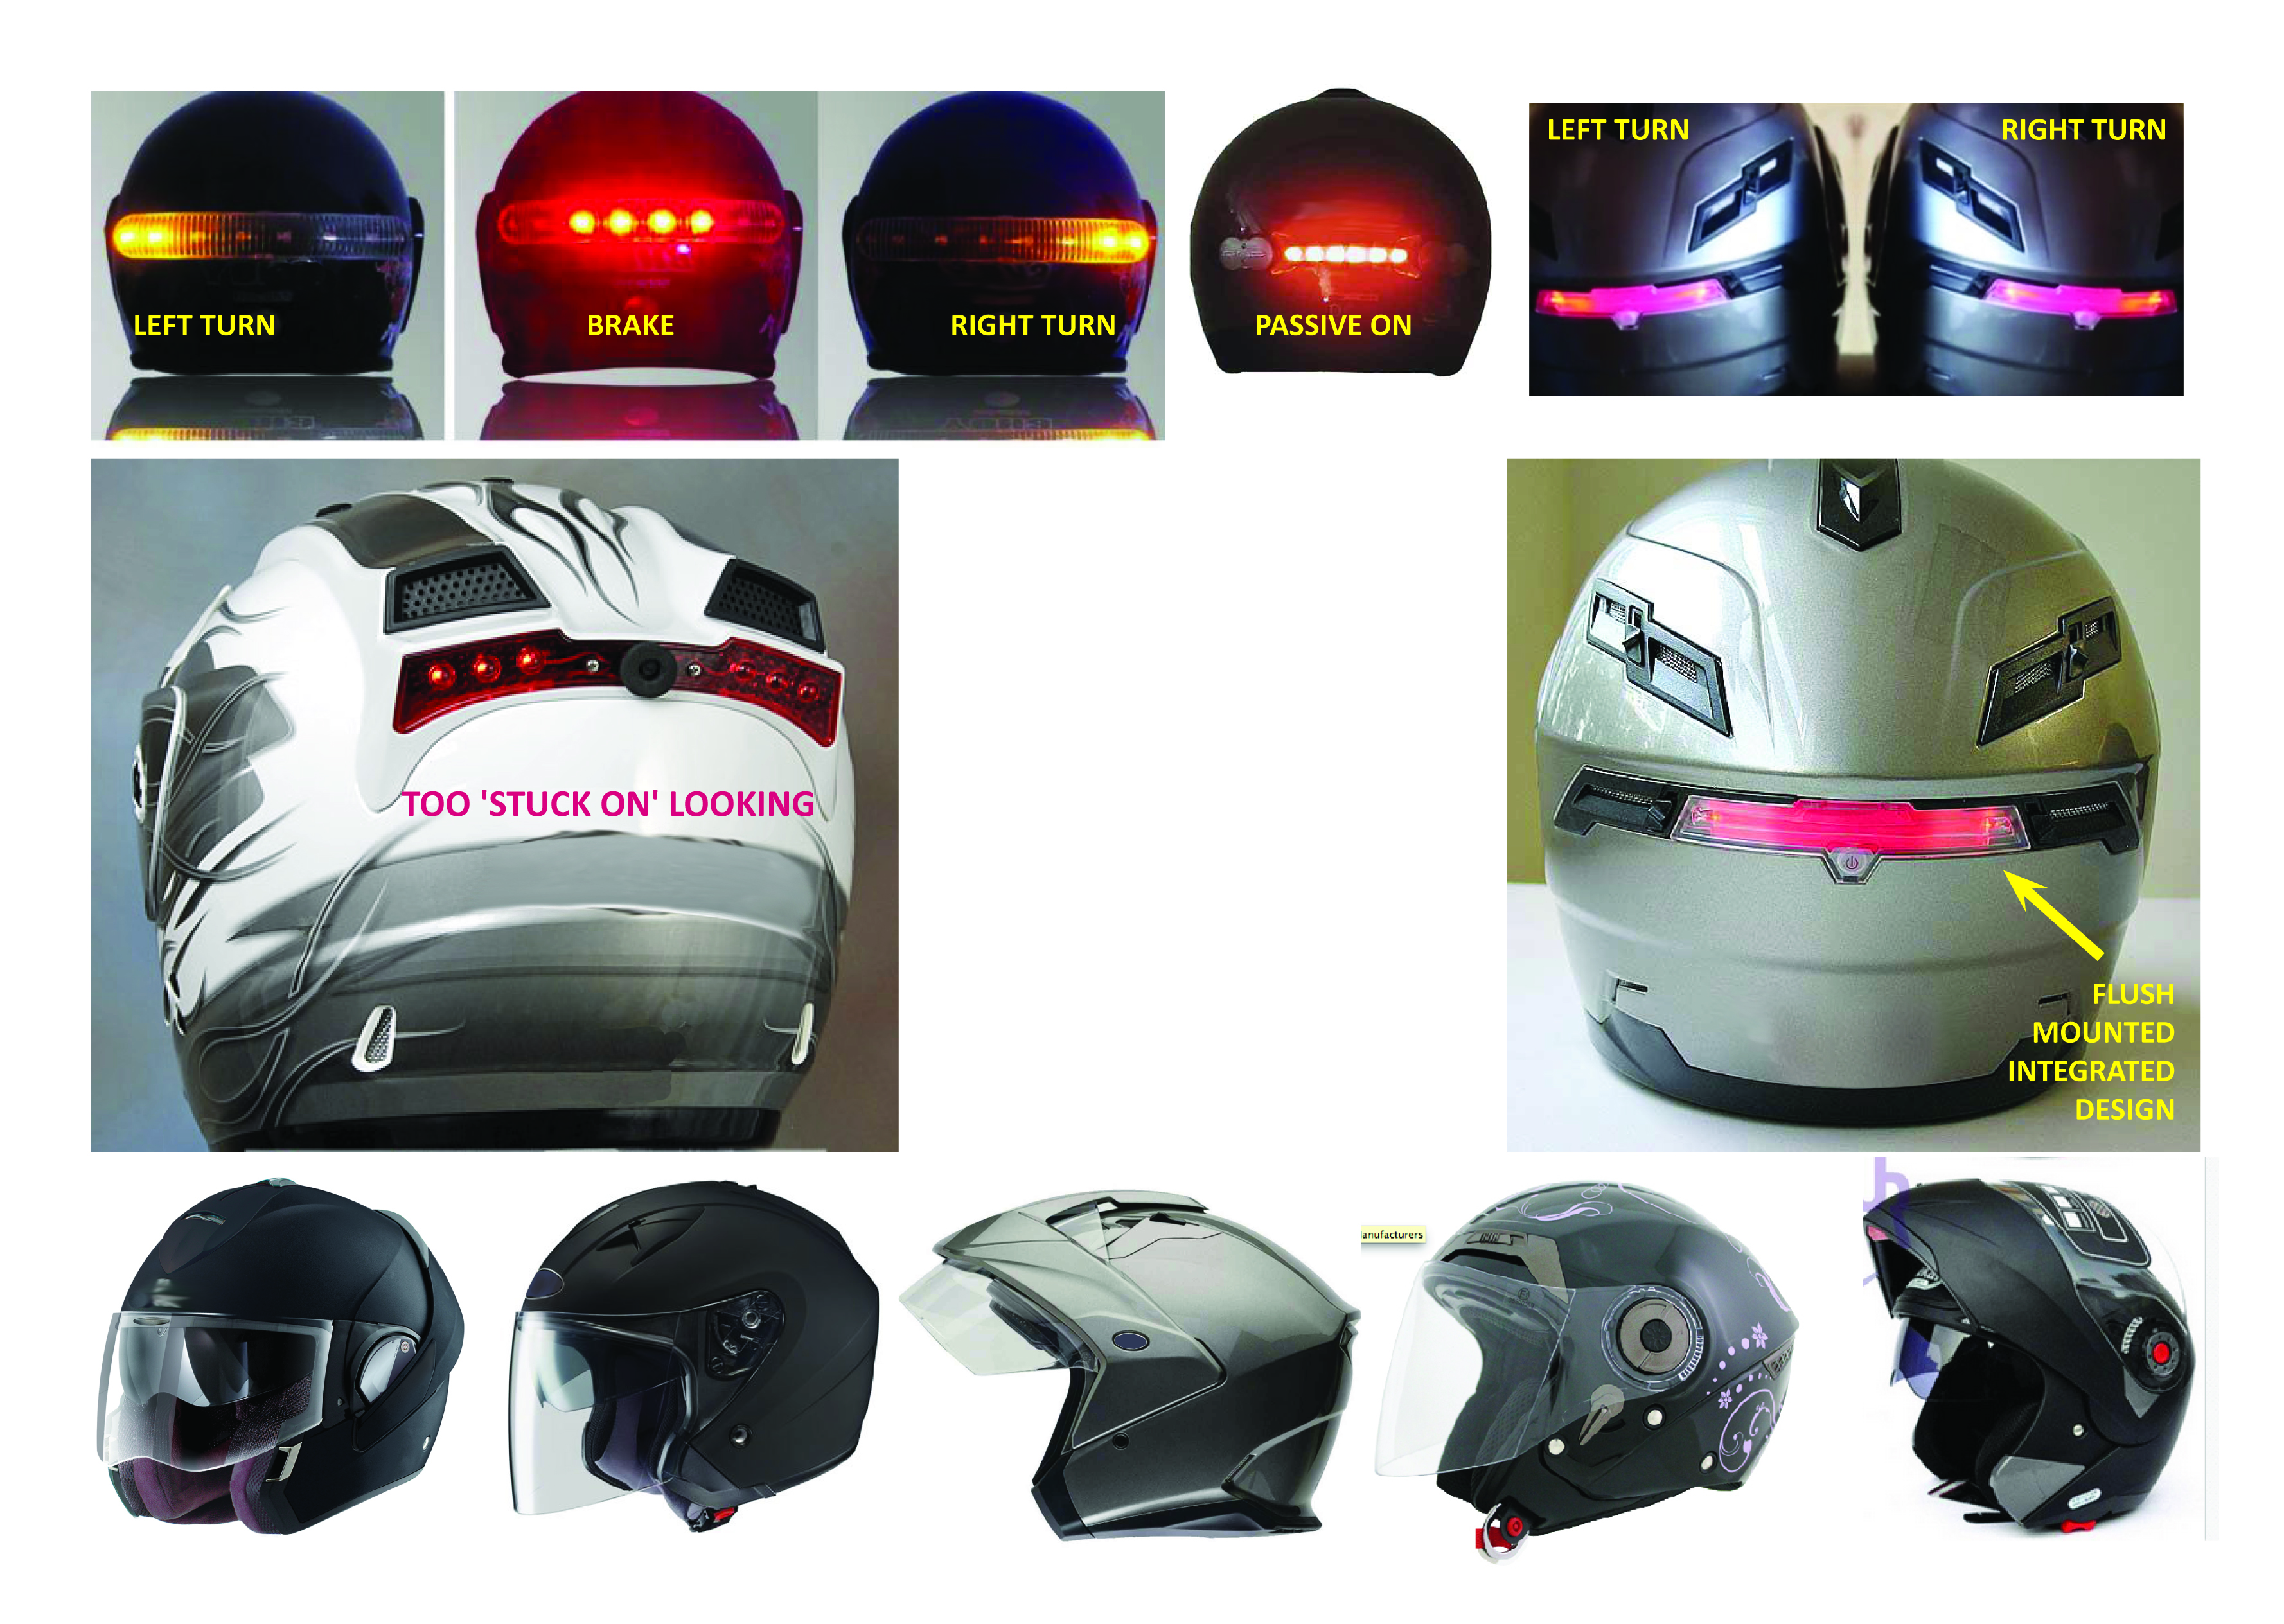 LED Helmet Concepts